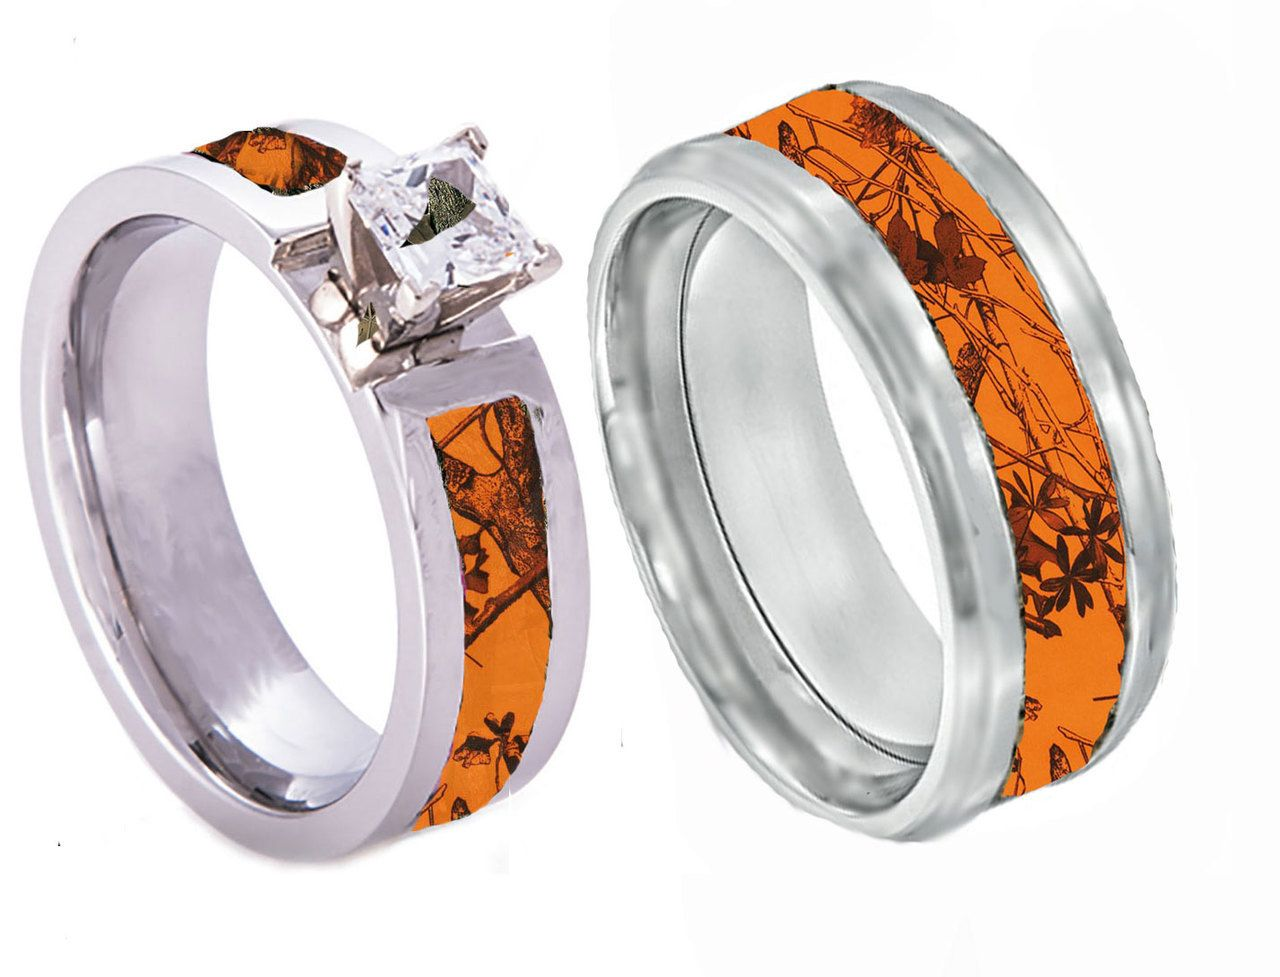 orange camo band couples ring set with stone | camo, ring and camo